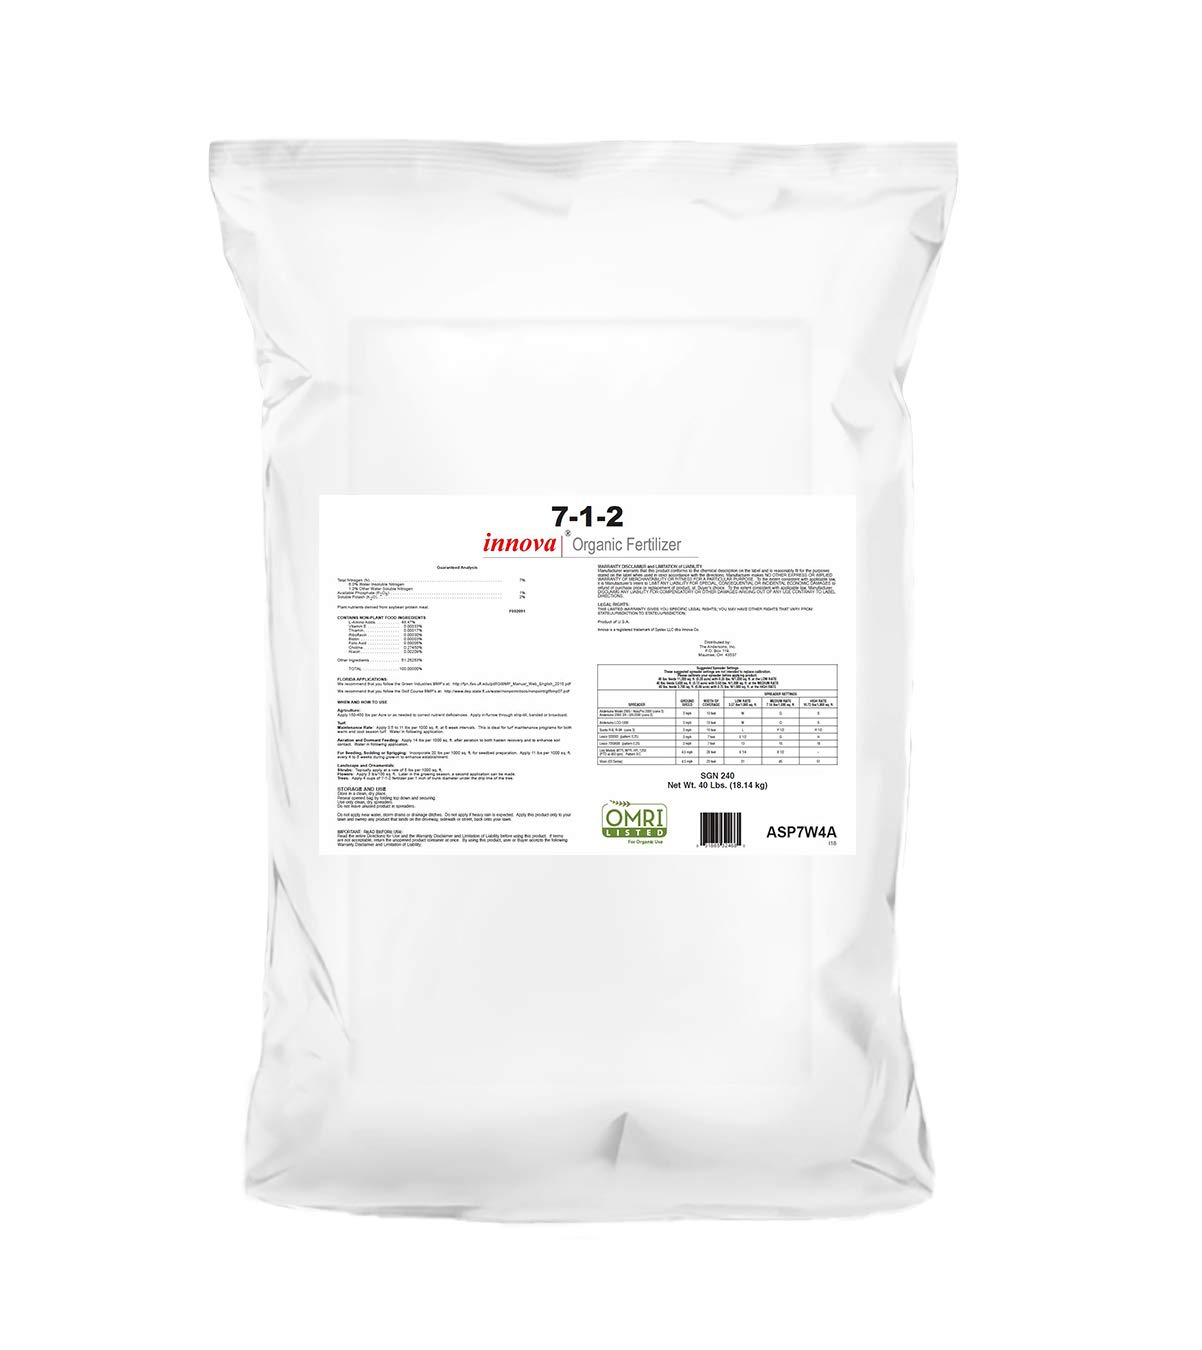 The Andersons 7-1-2 Innova Organic Fertilizer (40lbs) by The Andersons